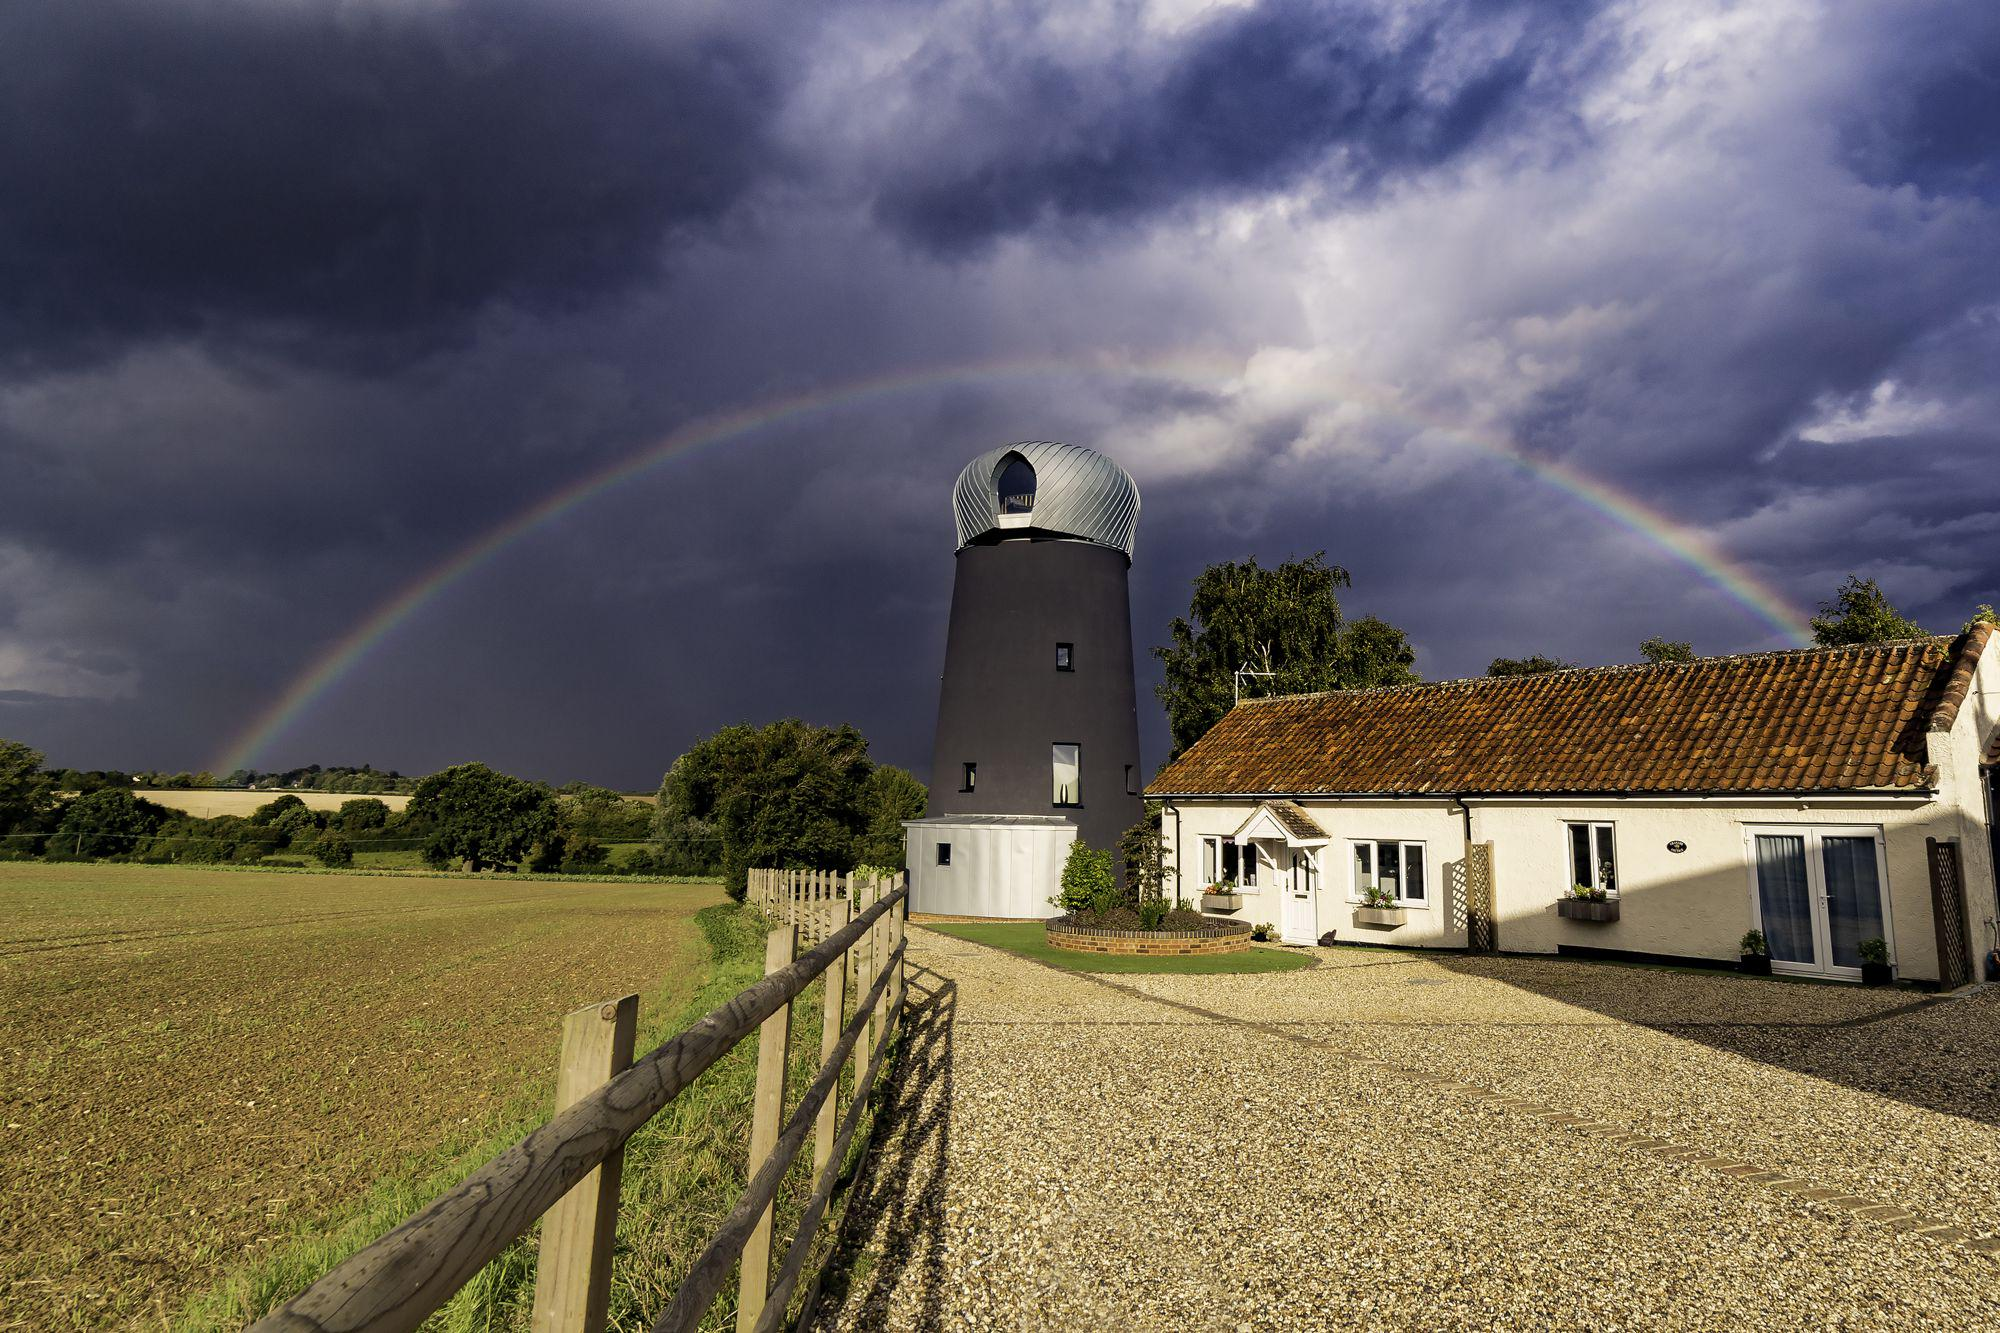 Unusual Places to Stay - unique and unusual holiday properties - Cool Places to Stay in the UK